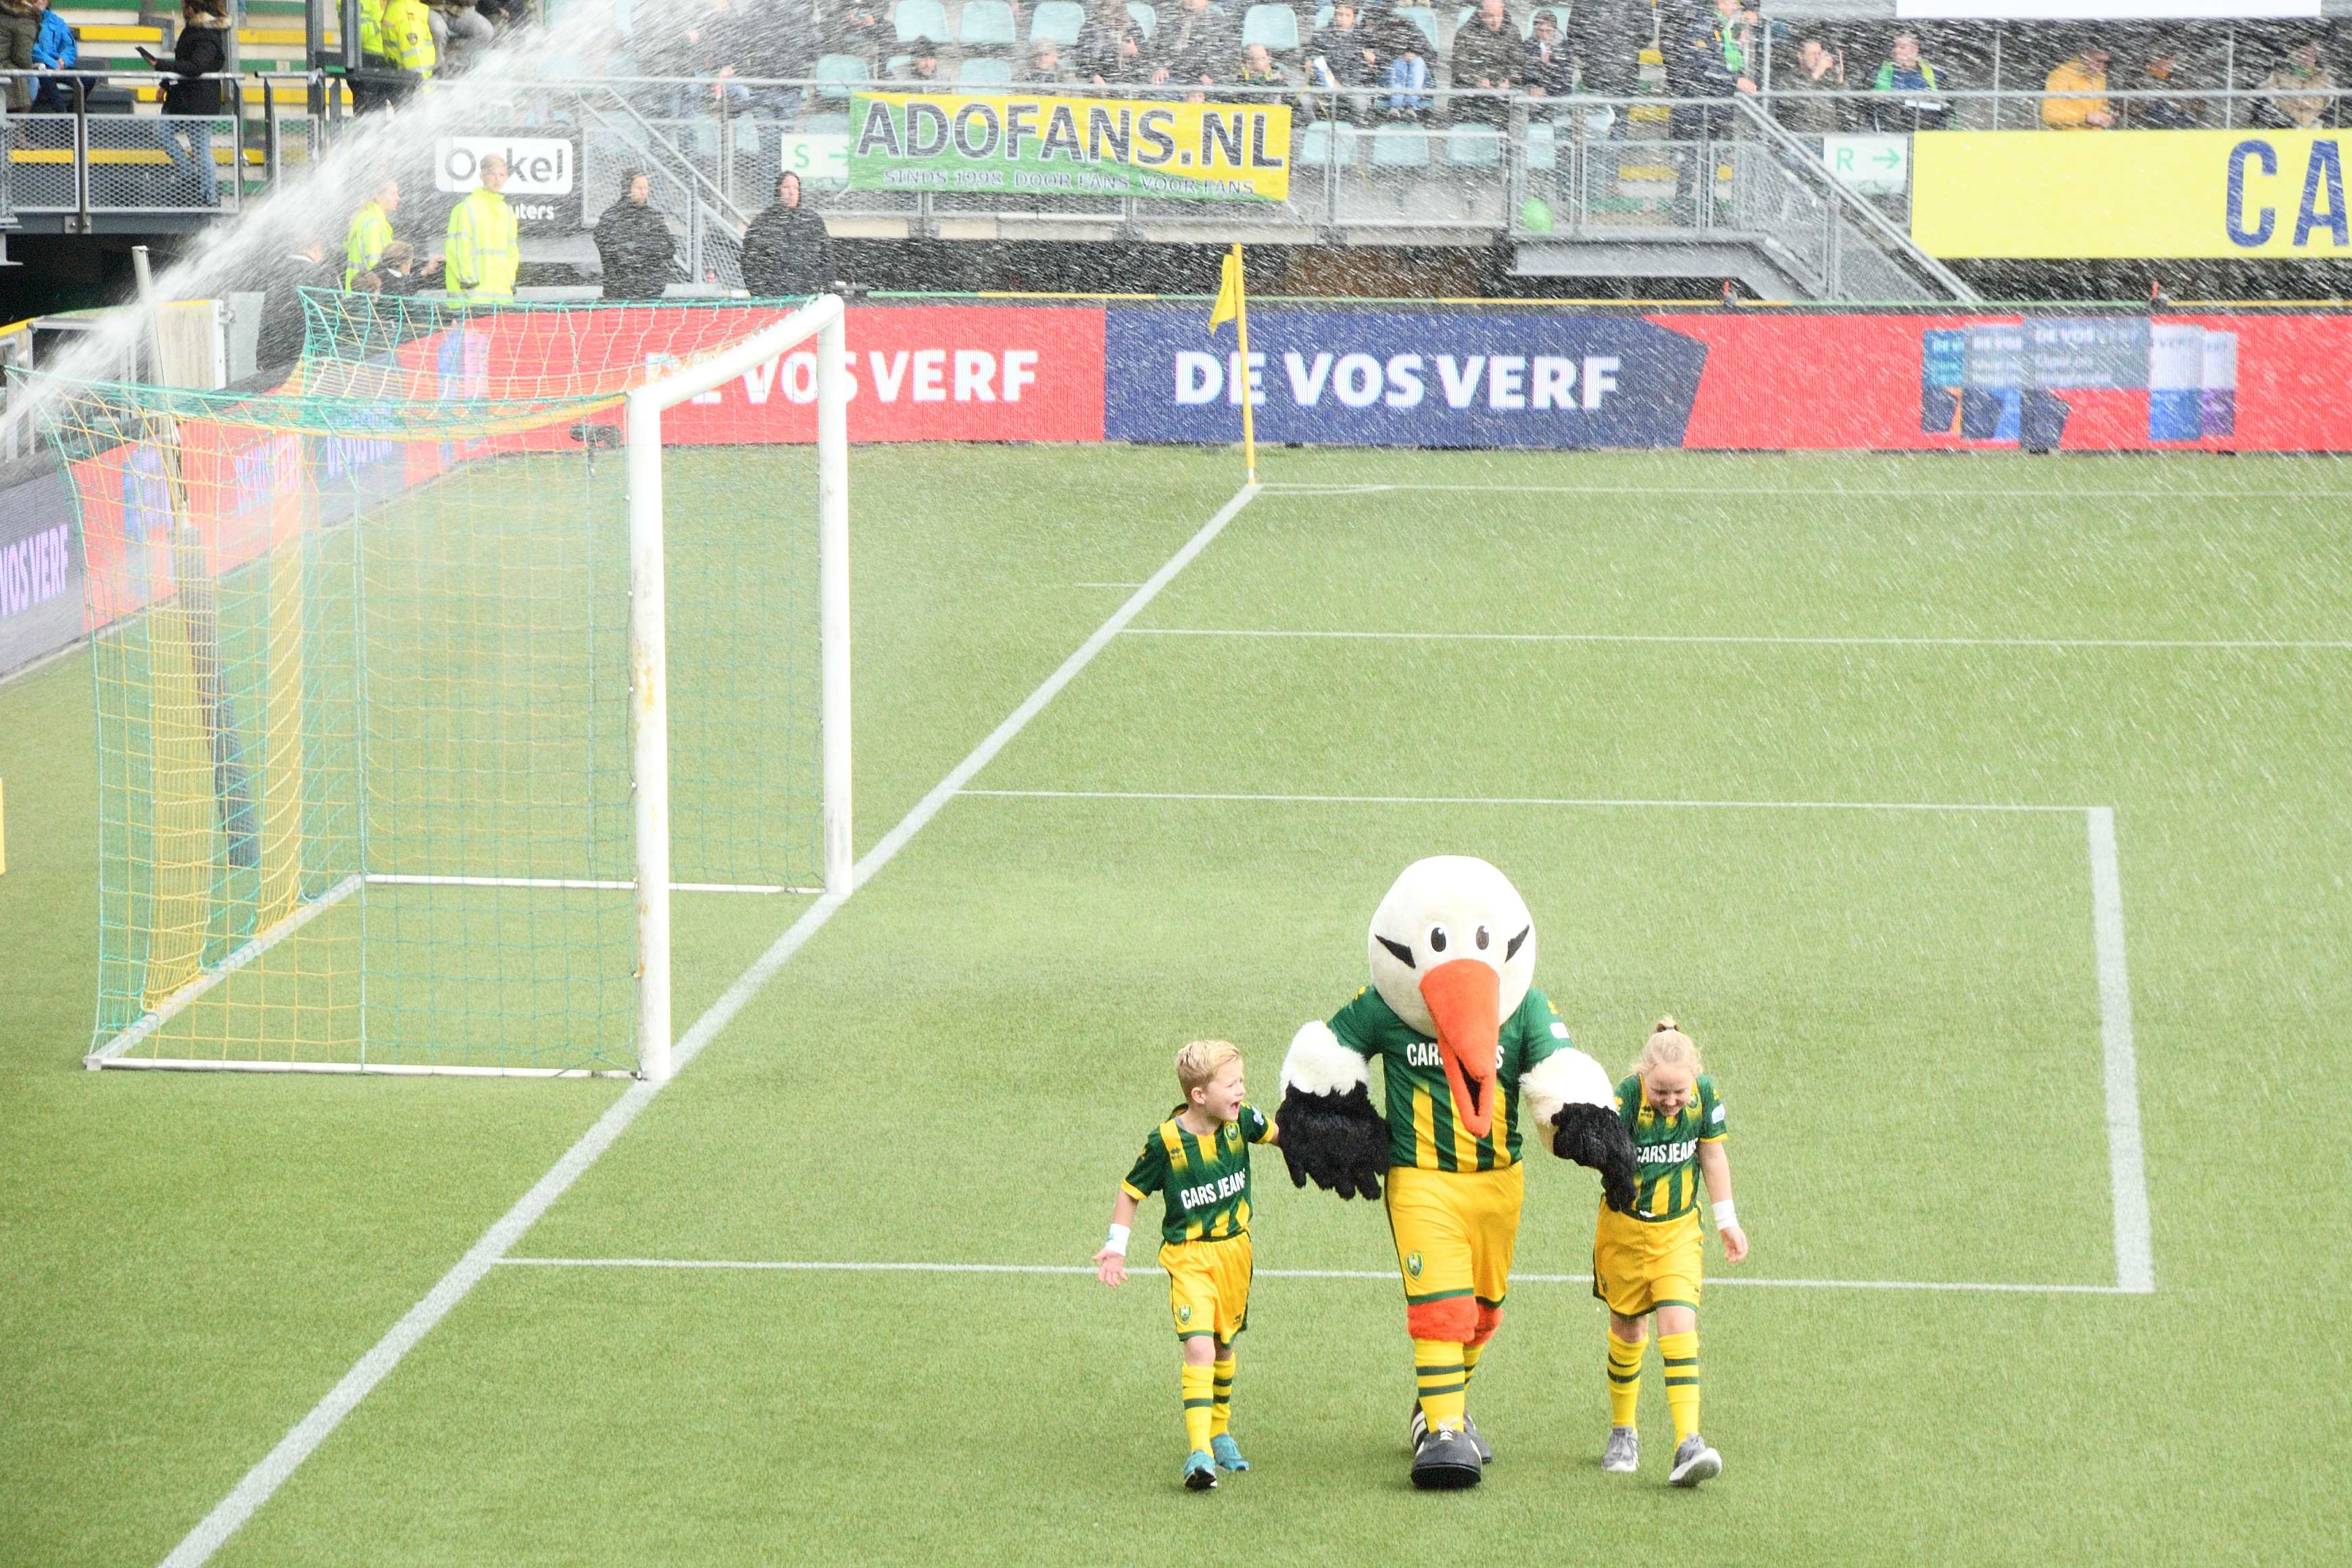 846f430a789 Football Nation 25 55 - ADO Den Haag 2-2 Feyenoord - Netherlands